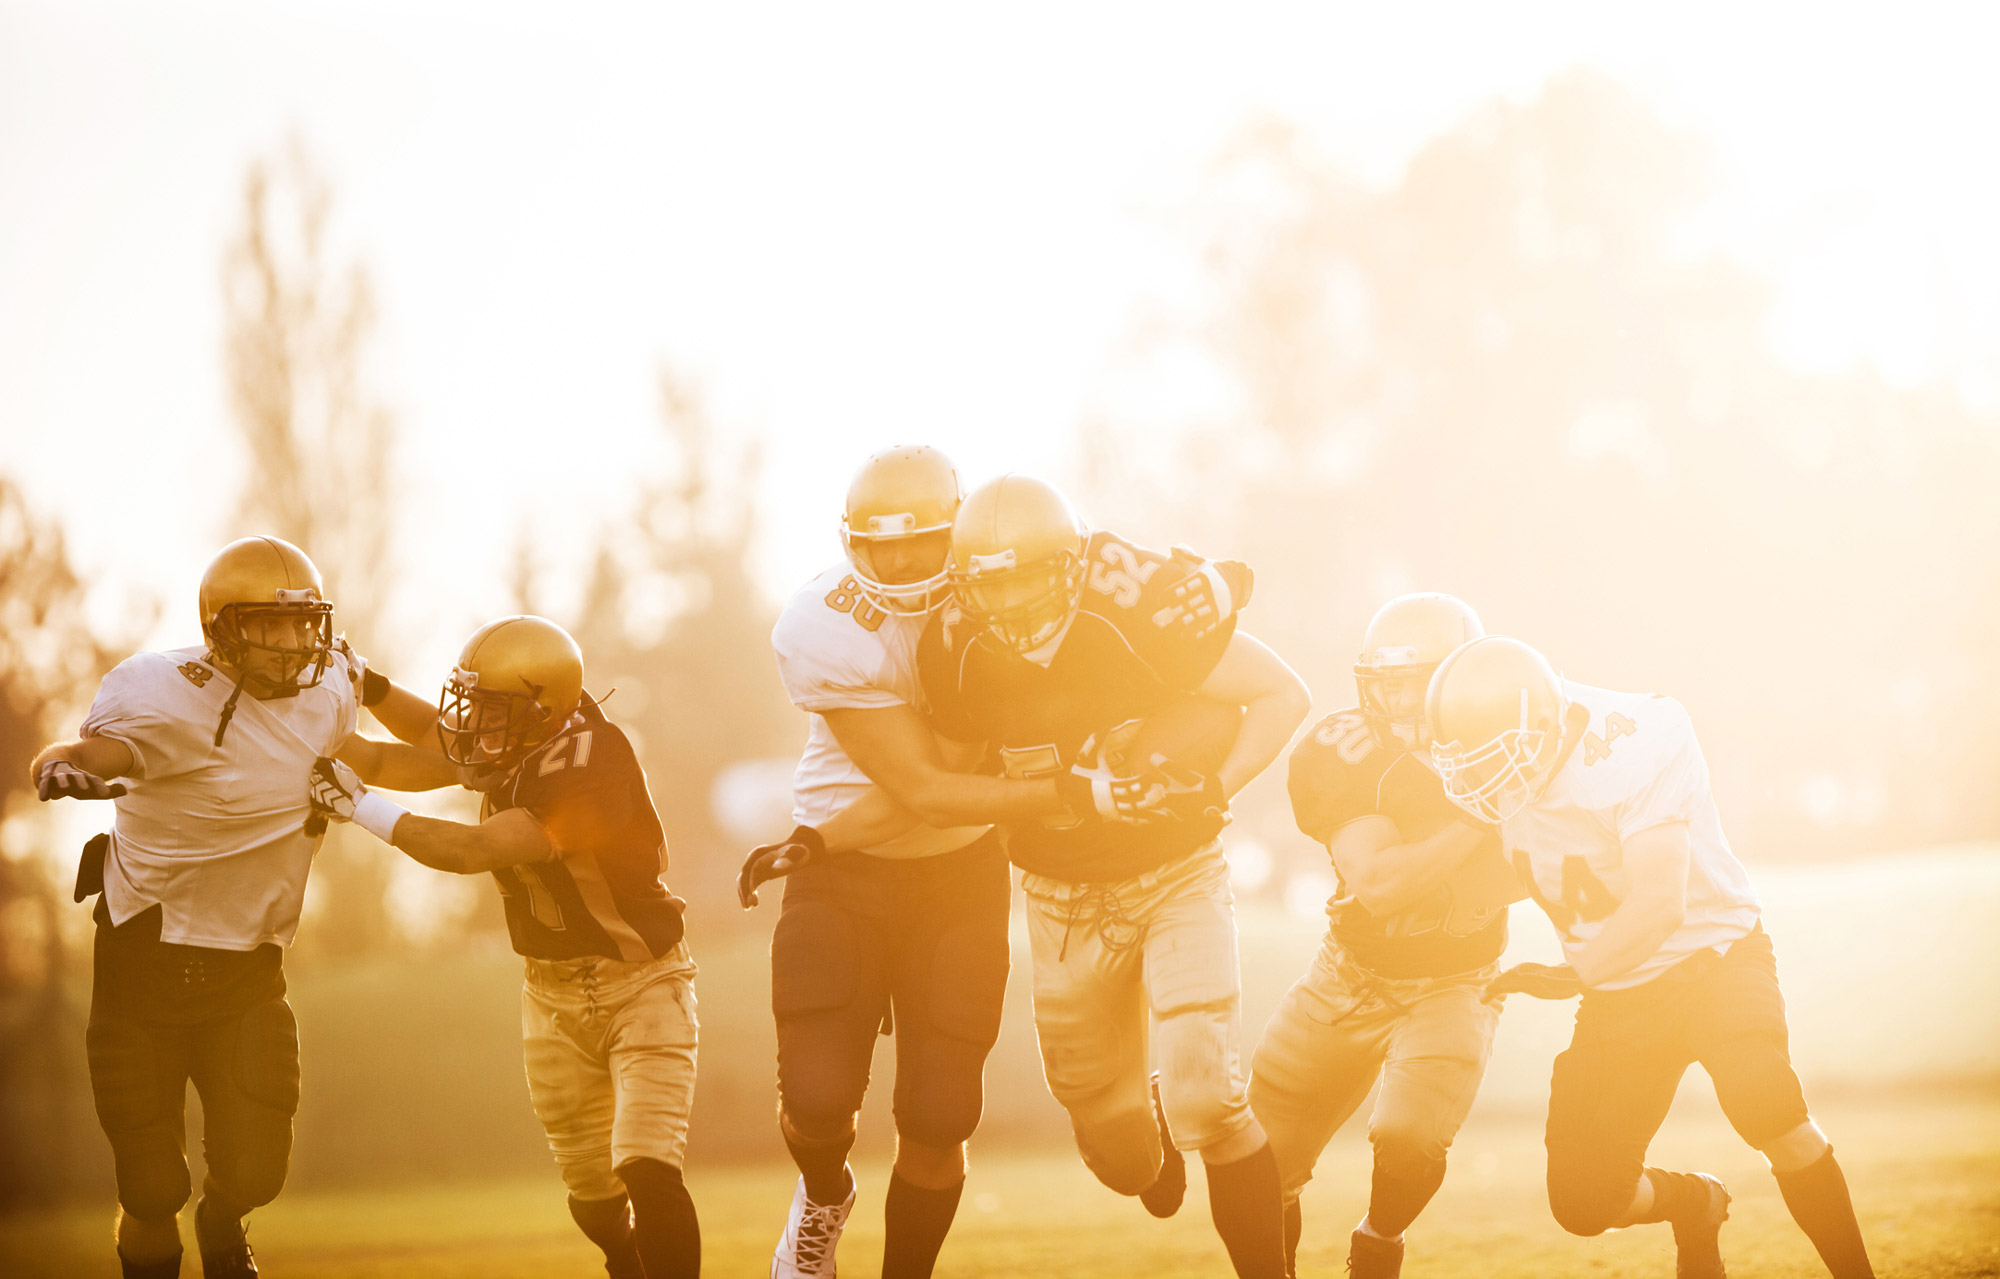 football players running on the field